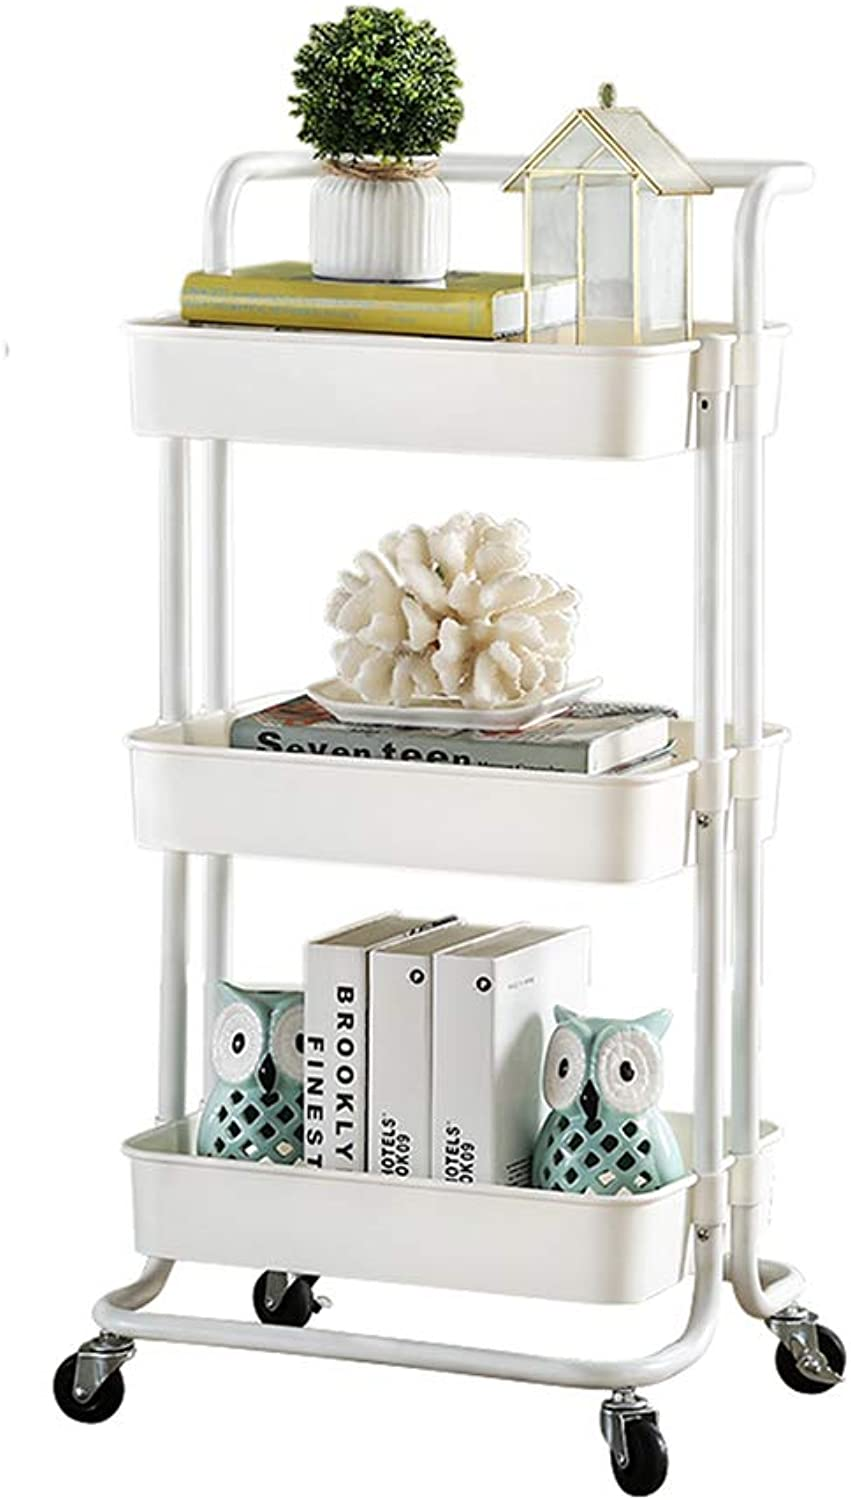 Chunlan Trolley 3-Layer Metal Rolling Multi-Function Trolley, Practical Handle, White, Black, 43  36  87cm (color   White)